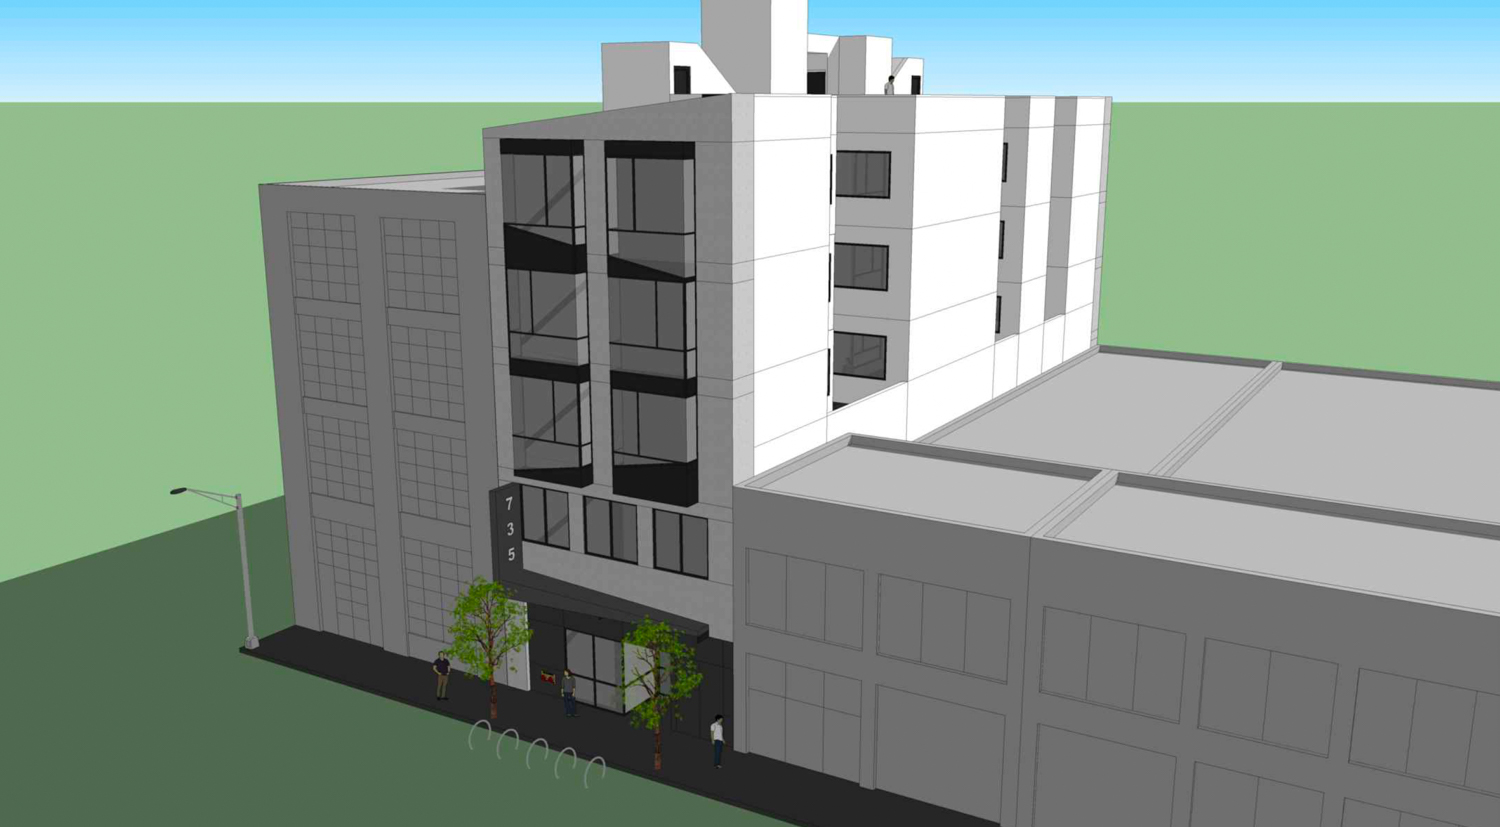 739 Bryant Street aerial view, design by Martinkovic Milford Architects